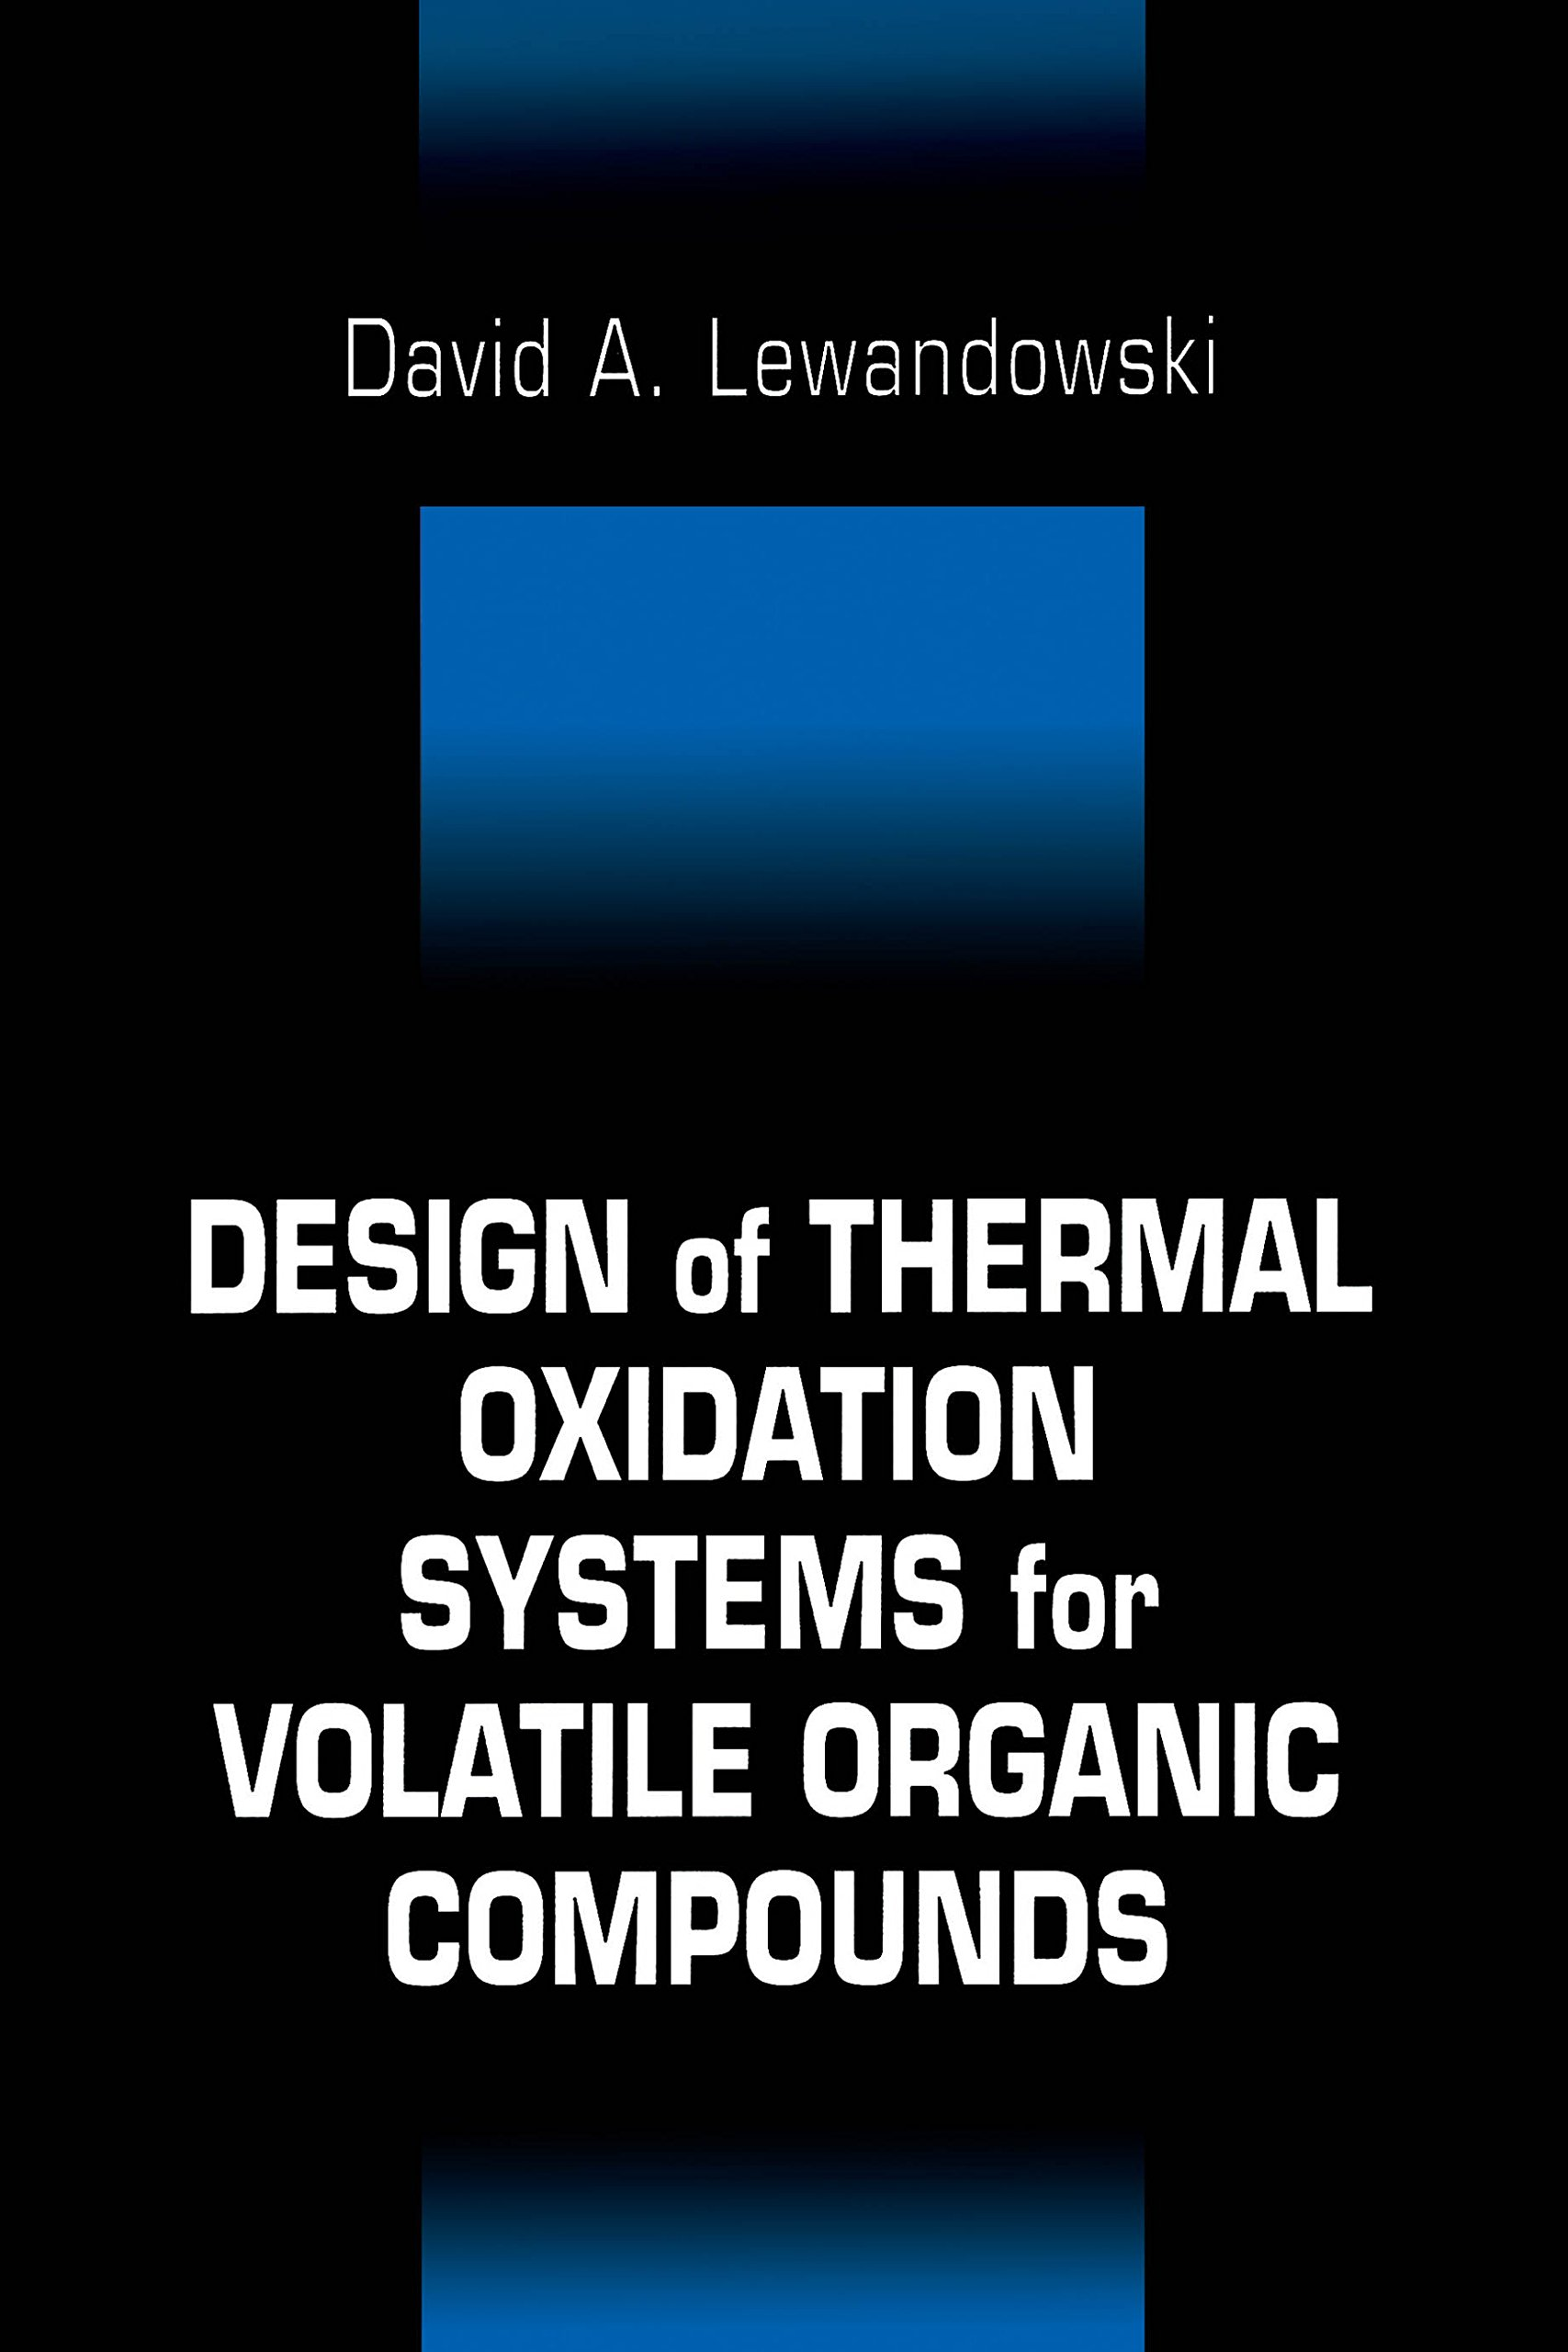 Design Of Thermal Oxidation Systems For Volatile Organic Compounds (English Edition)